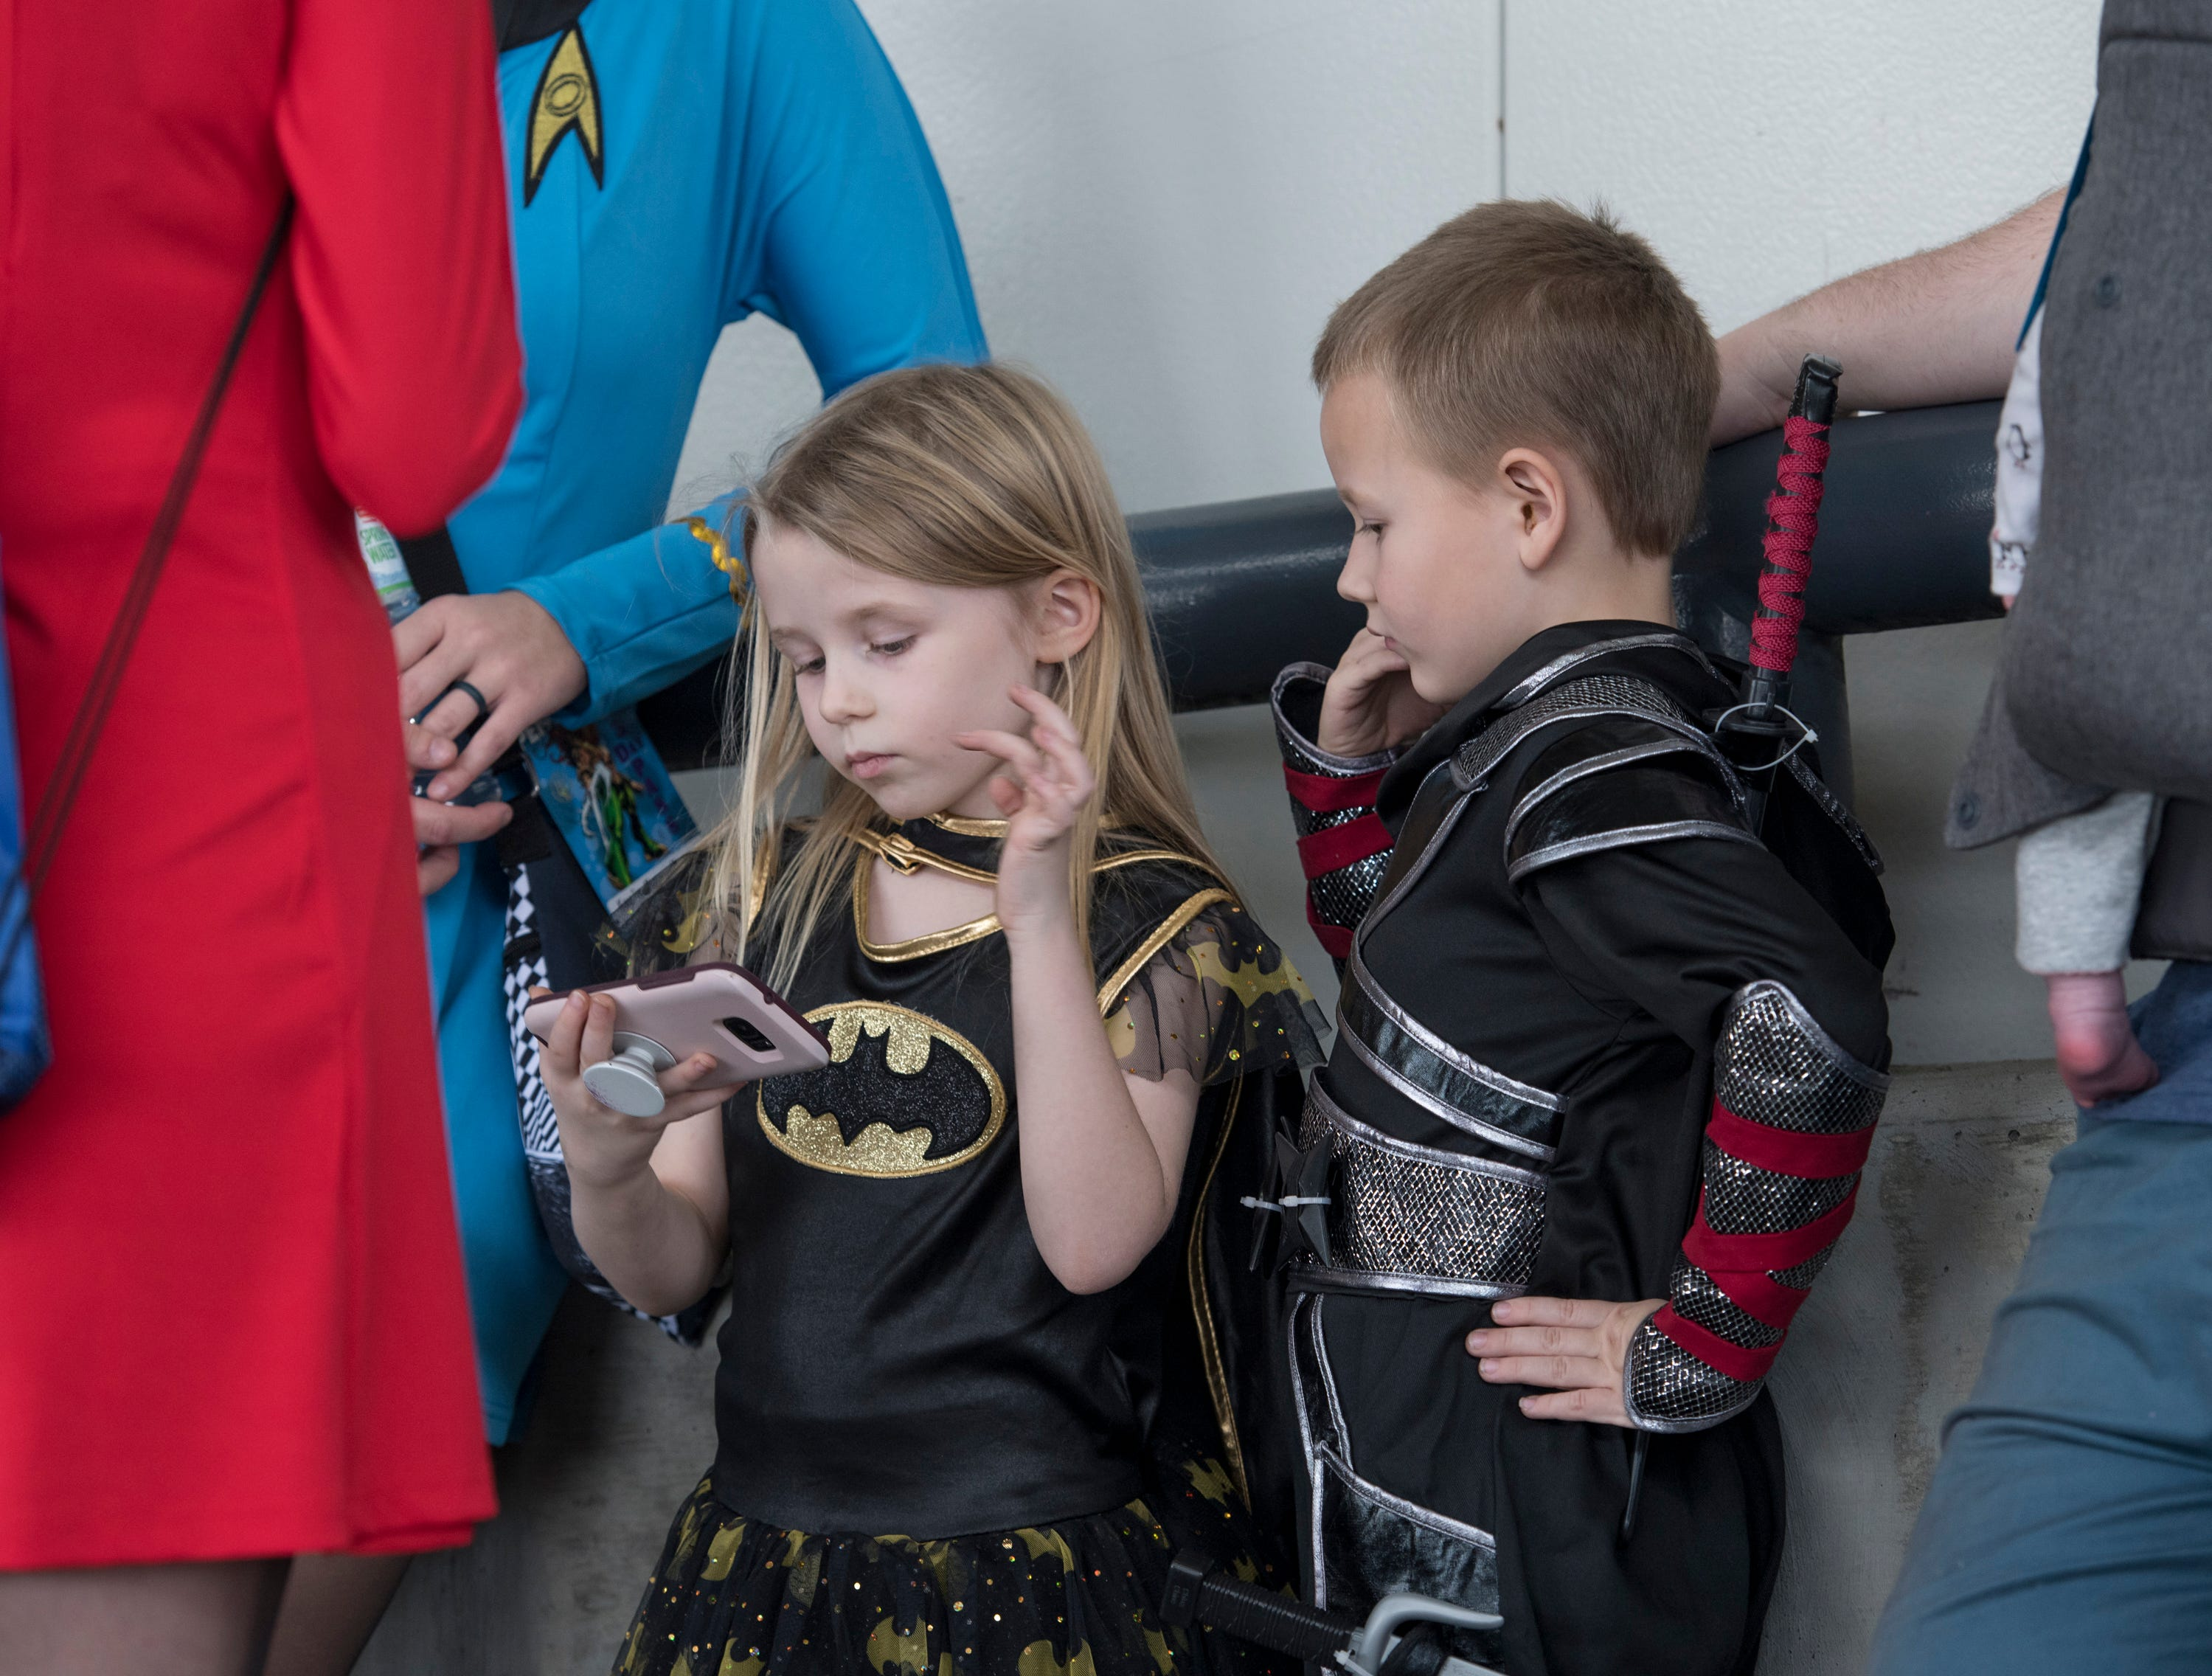 Emma Jester, 5, and her brother William, 7, of Mobile, Alabama, kill time while waiting to enter Pensacon by playing with a cell phone at the Pensacola Bay Center on Friday, February 22, 2019.